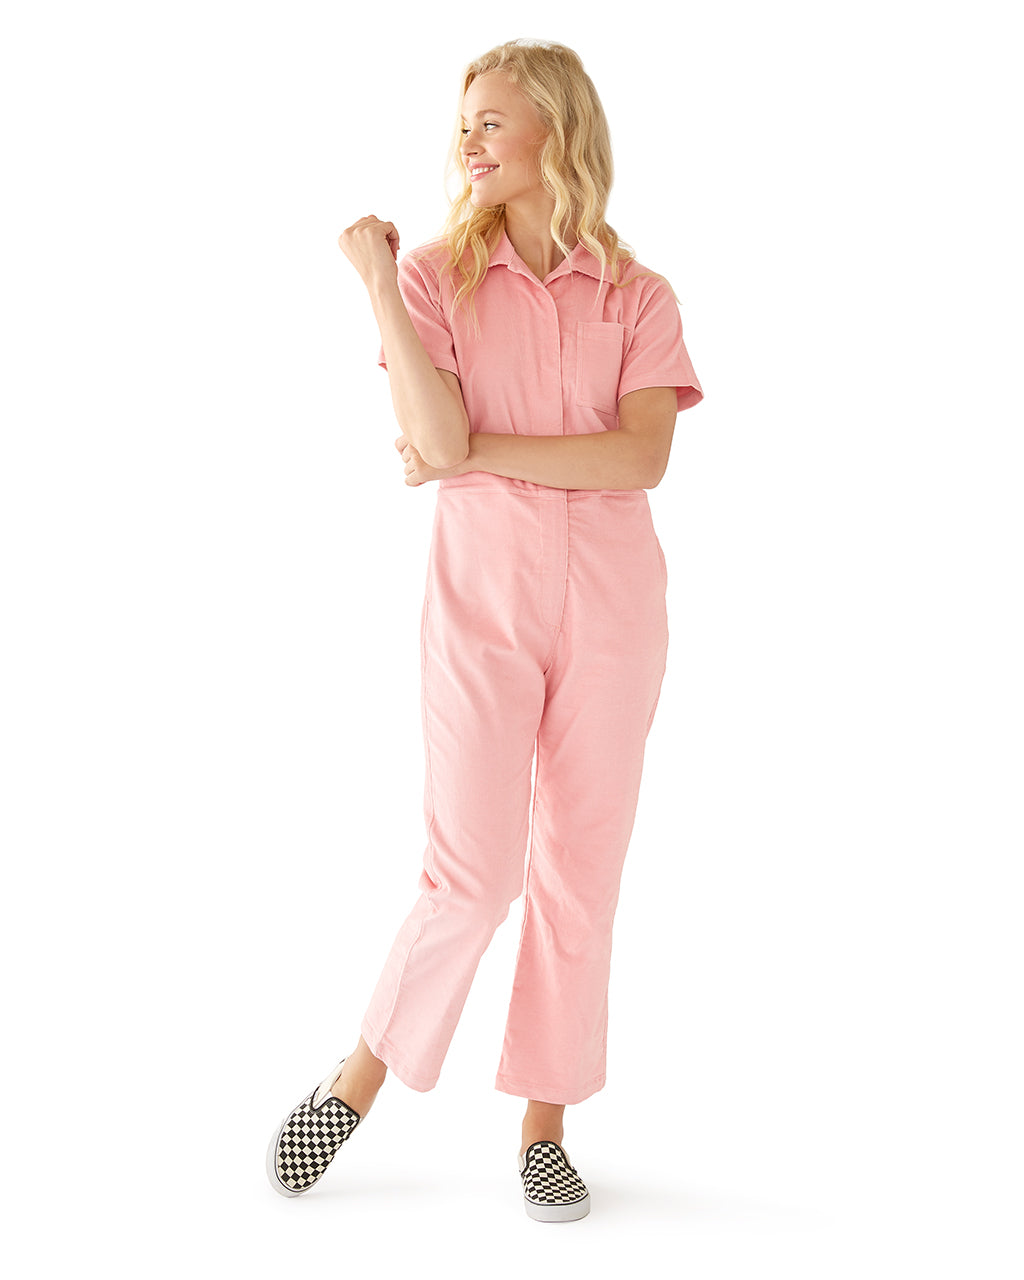 7634e73592a2 Corduroy Coveralls by nooworks - jumpsuit - ban.do